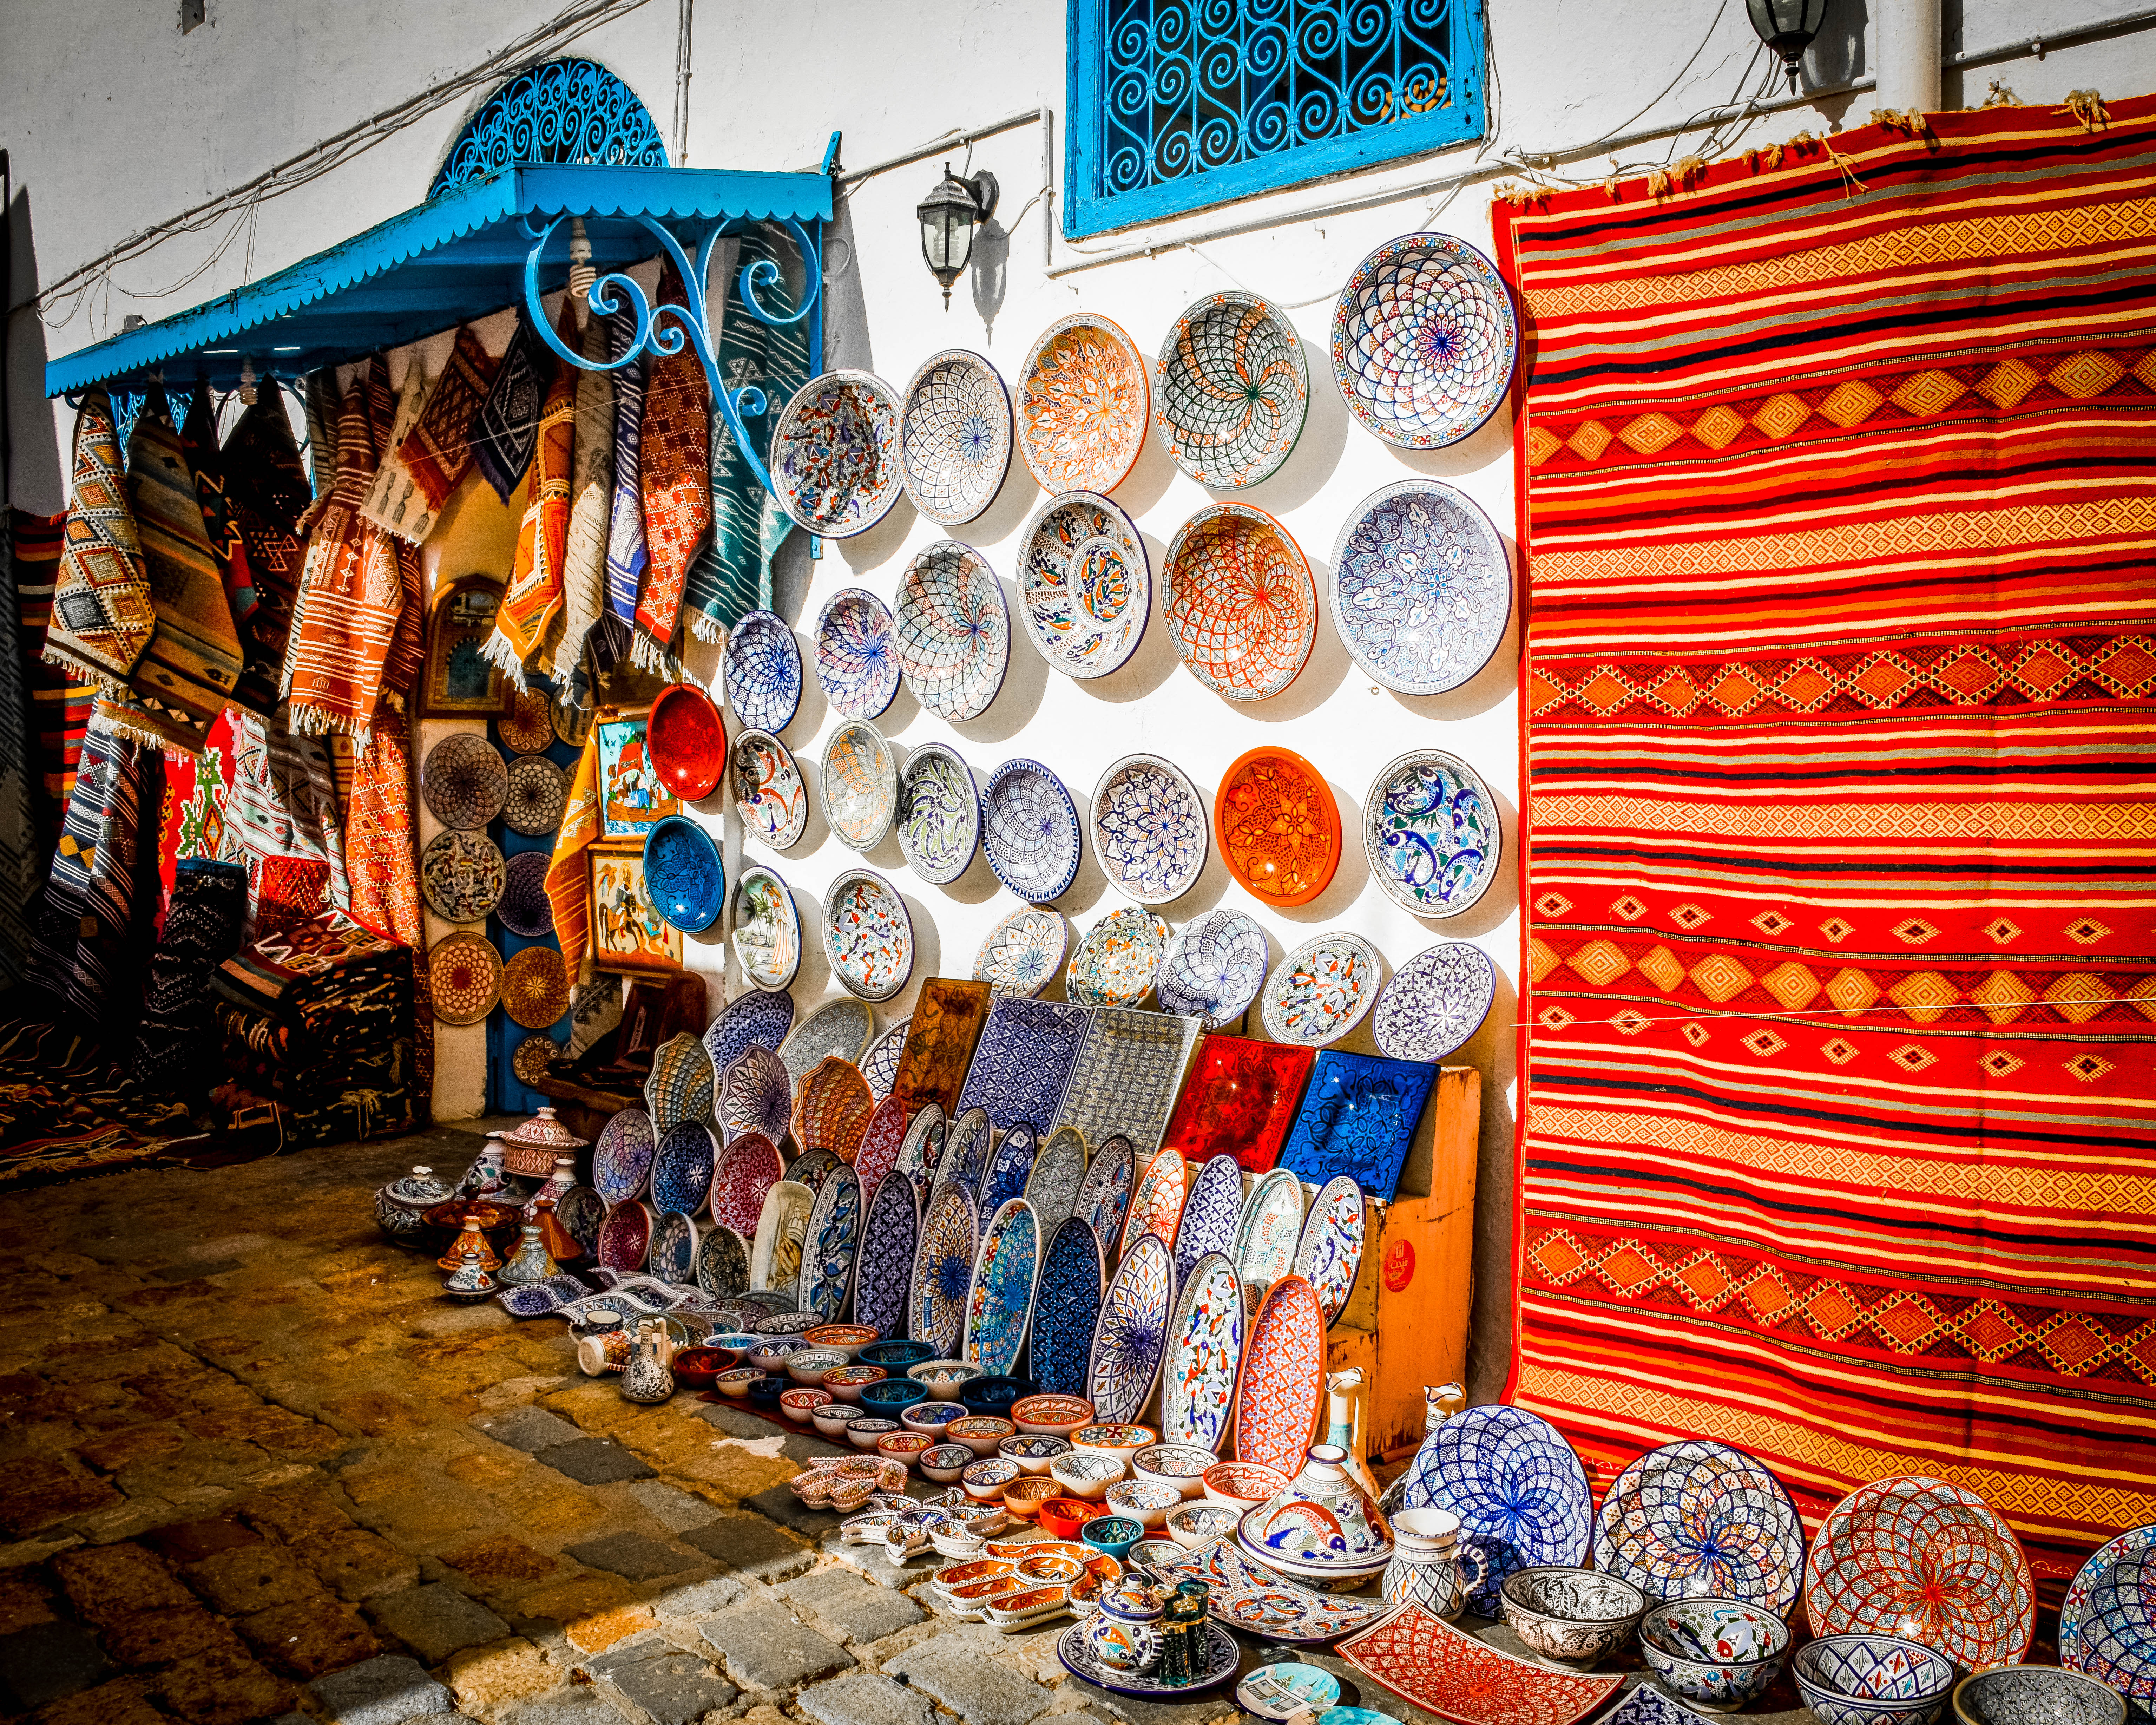 Tunisia - Sidi Bou Said - Plates and Tangines for Sale